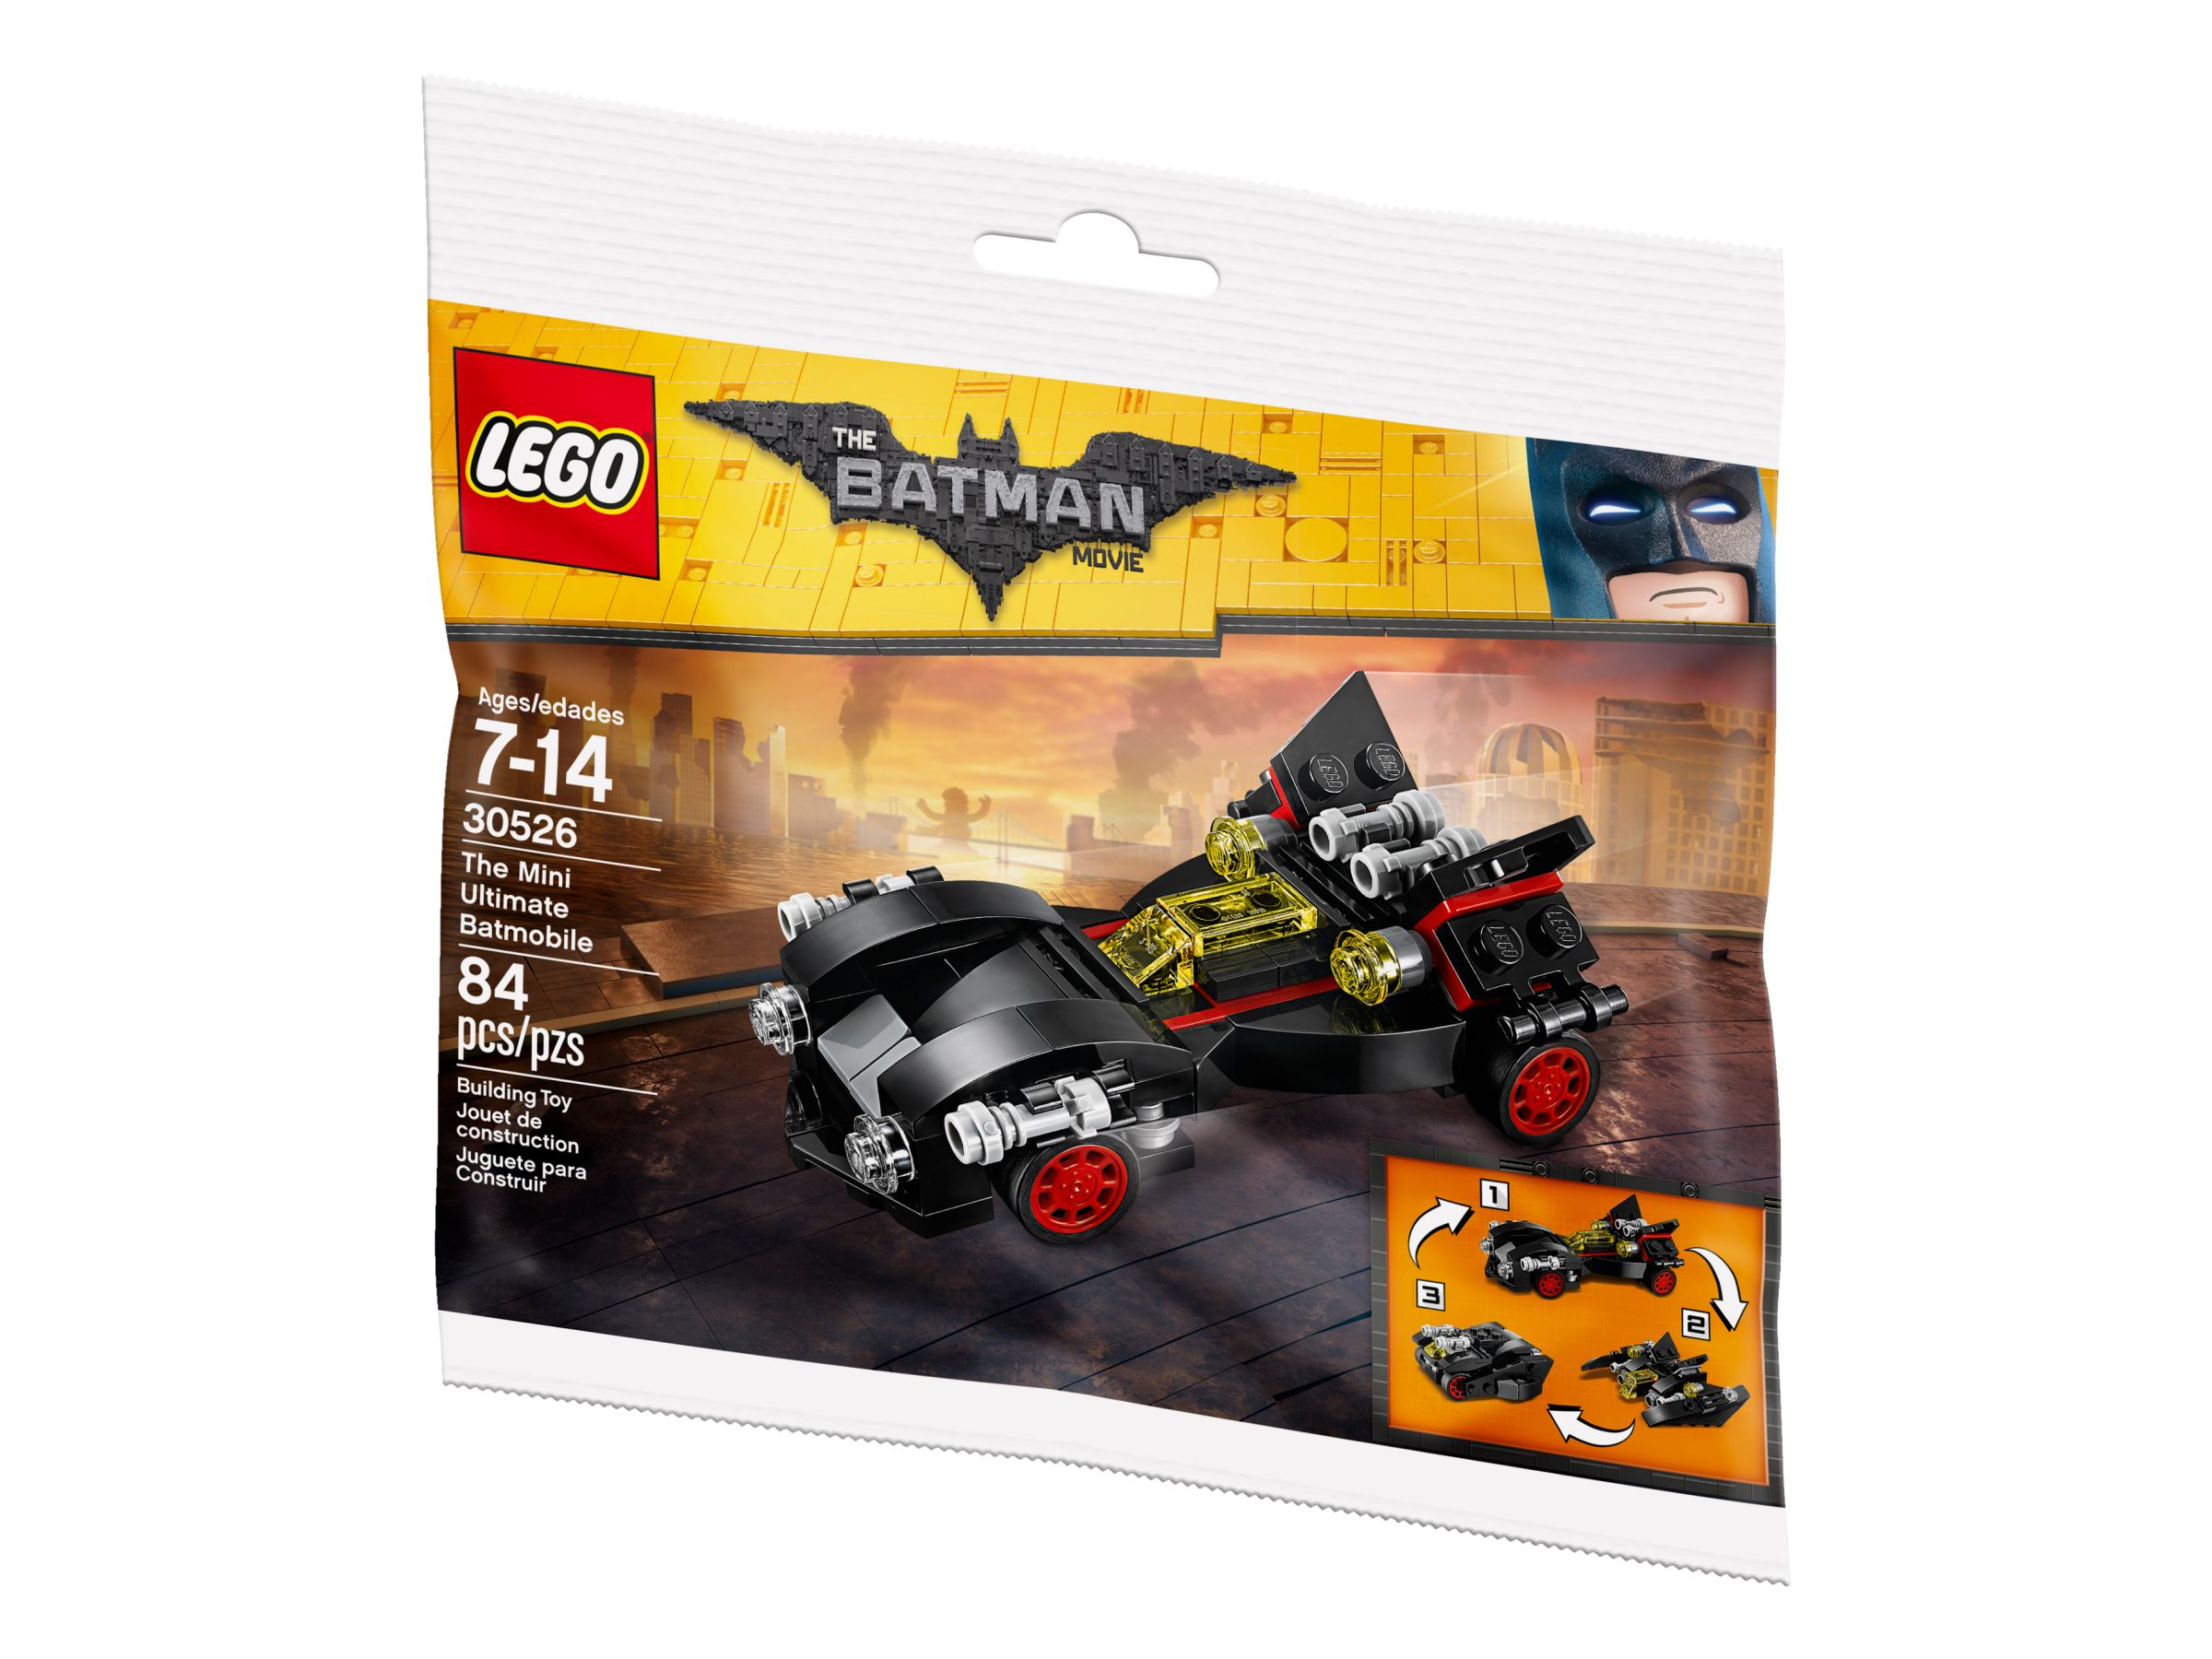 LEGO The LEGO Batman Movie 30526 LEGO 30526 The Mini Ultimate Batmobile Polybag LEGO_30526_alt3.jpg